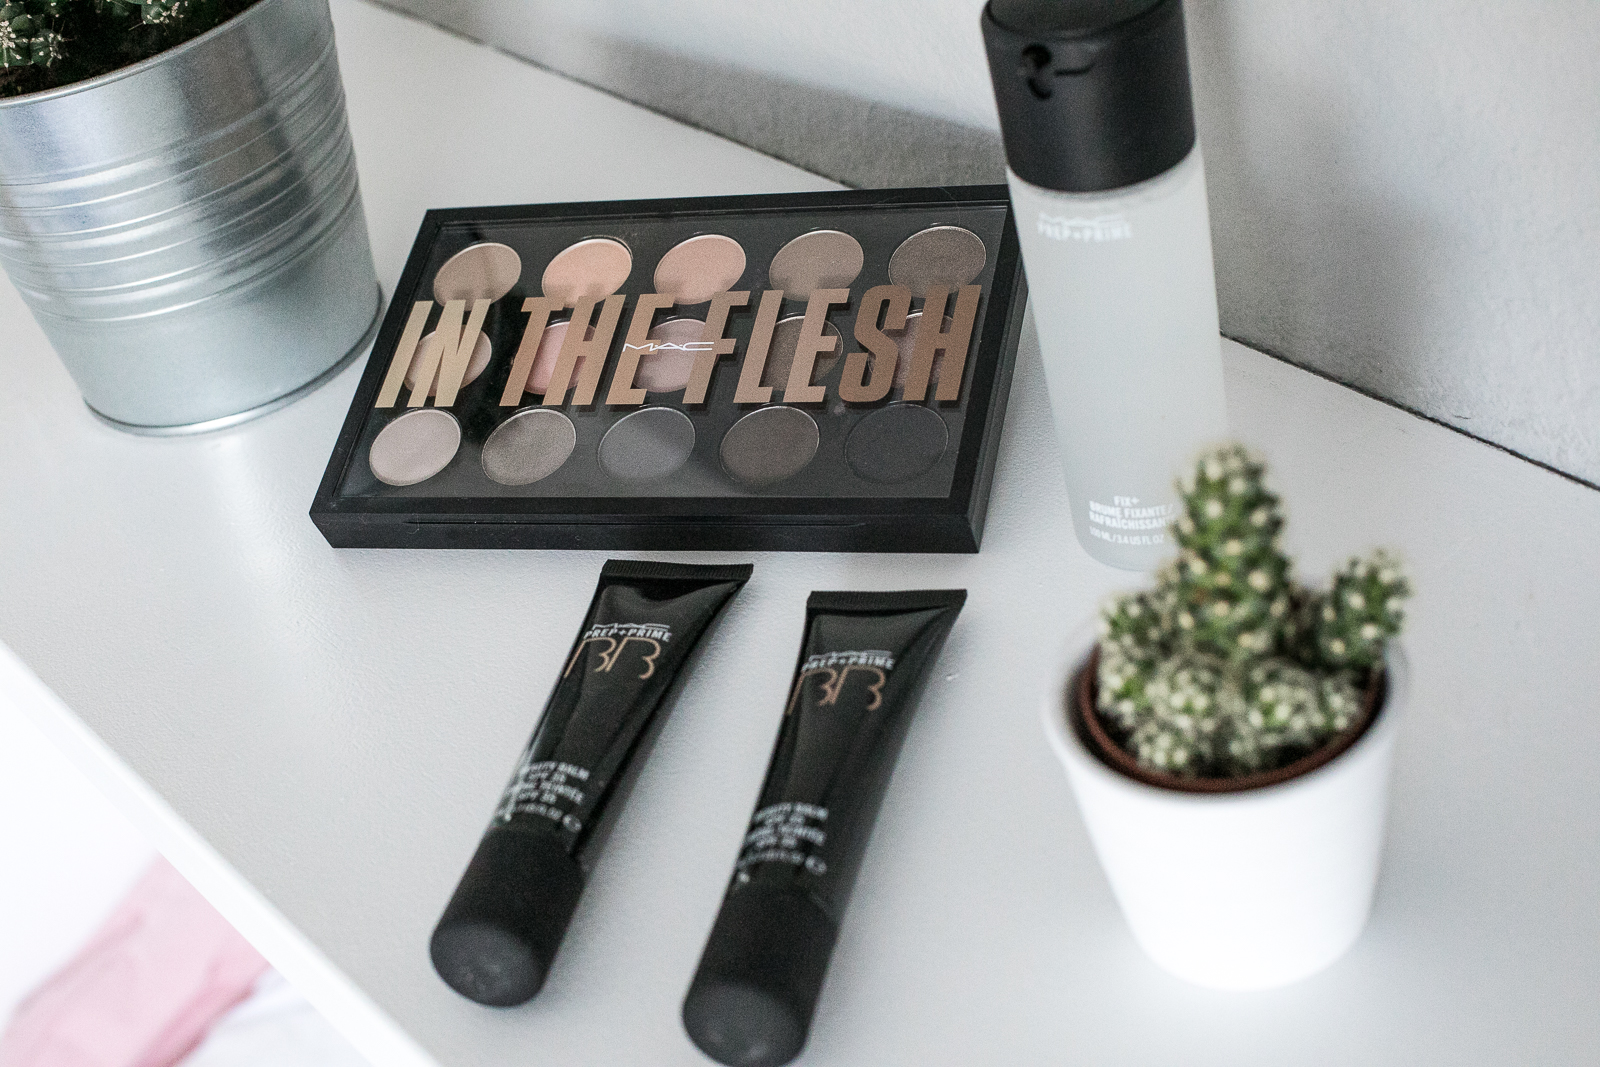 Foto-by-Nadja-Nemetz-Wien-wienerblogger-blogger-beautyblogger_lifestyleblogger-lifestyle-beauty-newin-new-in-mac-maccosmetics-intheflesh-in-the-flesh-palette-eyeshadow-nudes-bbcream-bb-cream-fixingspray-fixing-spray-3